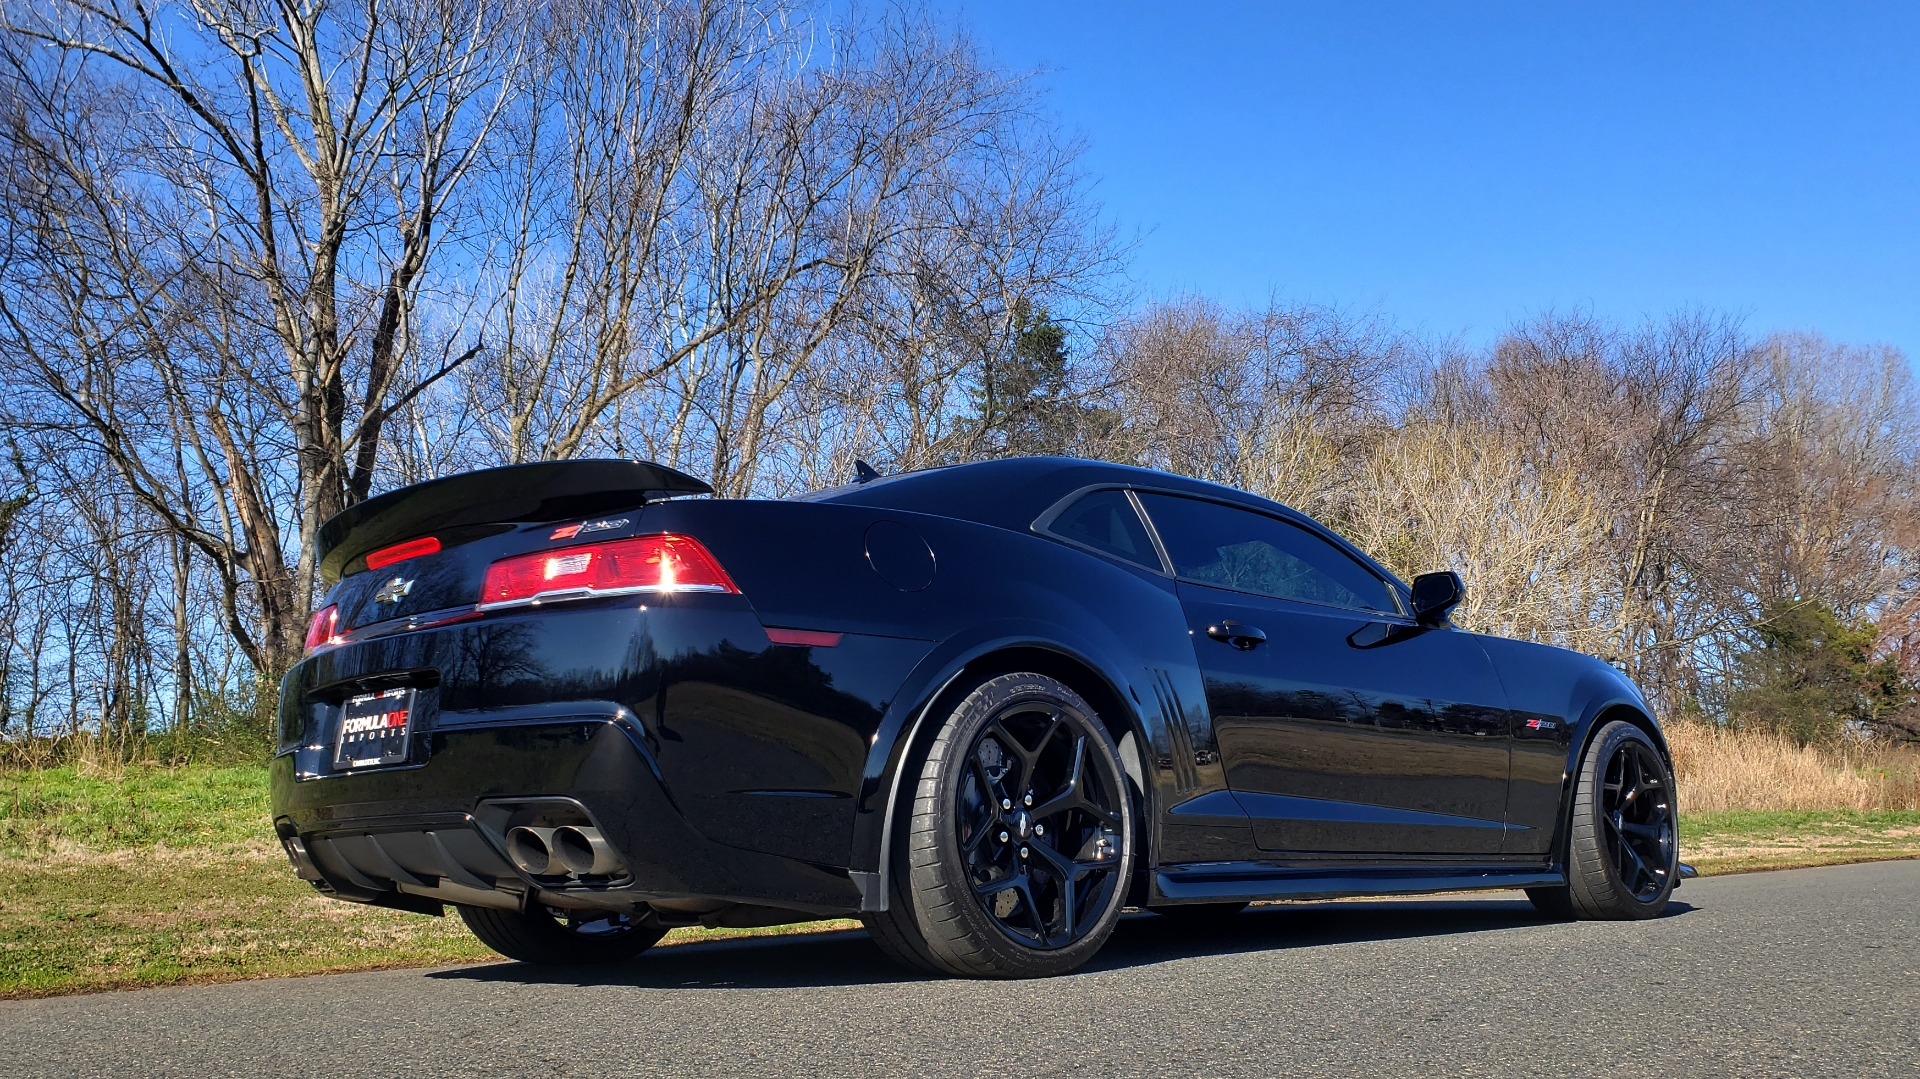 Used 2014 Chevrolet CAMARO Z/28 / 427 7.0L V8 505HP / RADIO / AIR CONDITIONING for sale Sold at Formula Imports in Charlotte NC 28227 29